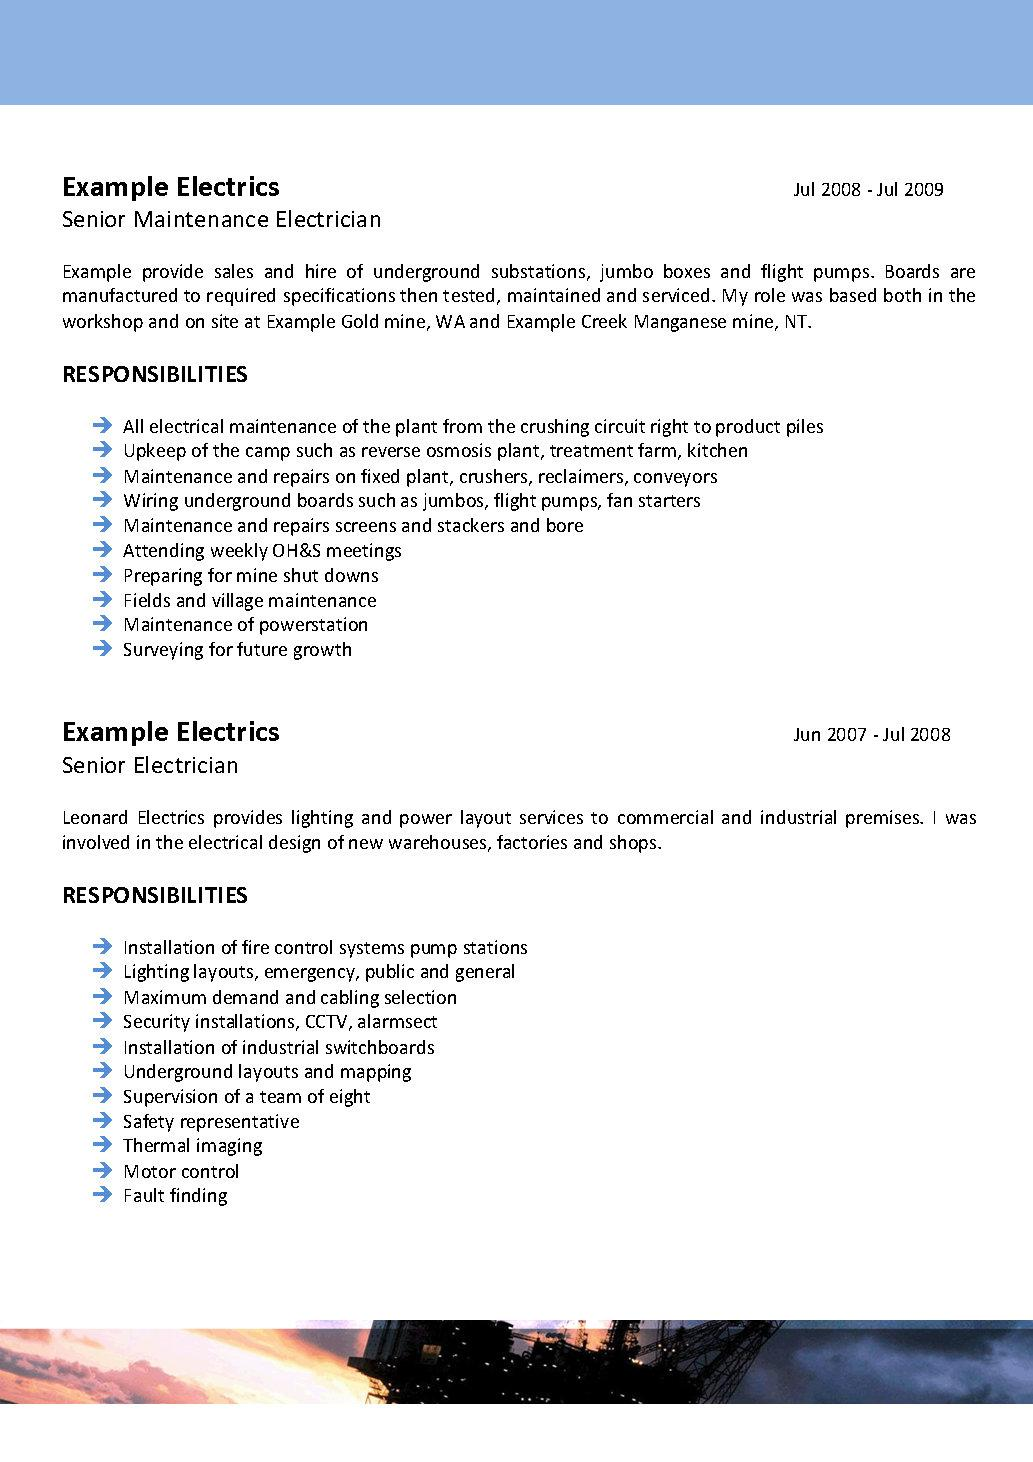 resume offshore electrician electrical engineer resume sample we can help professional resume writing resume templates